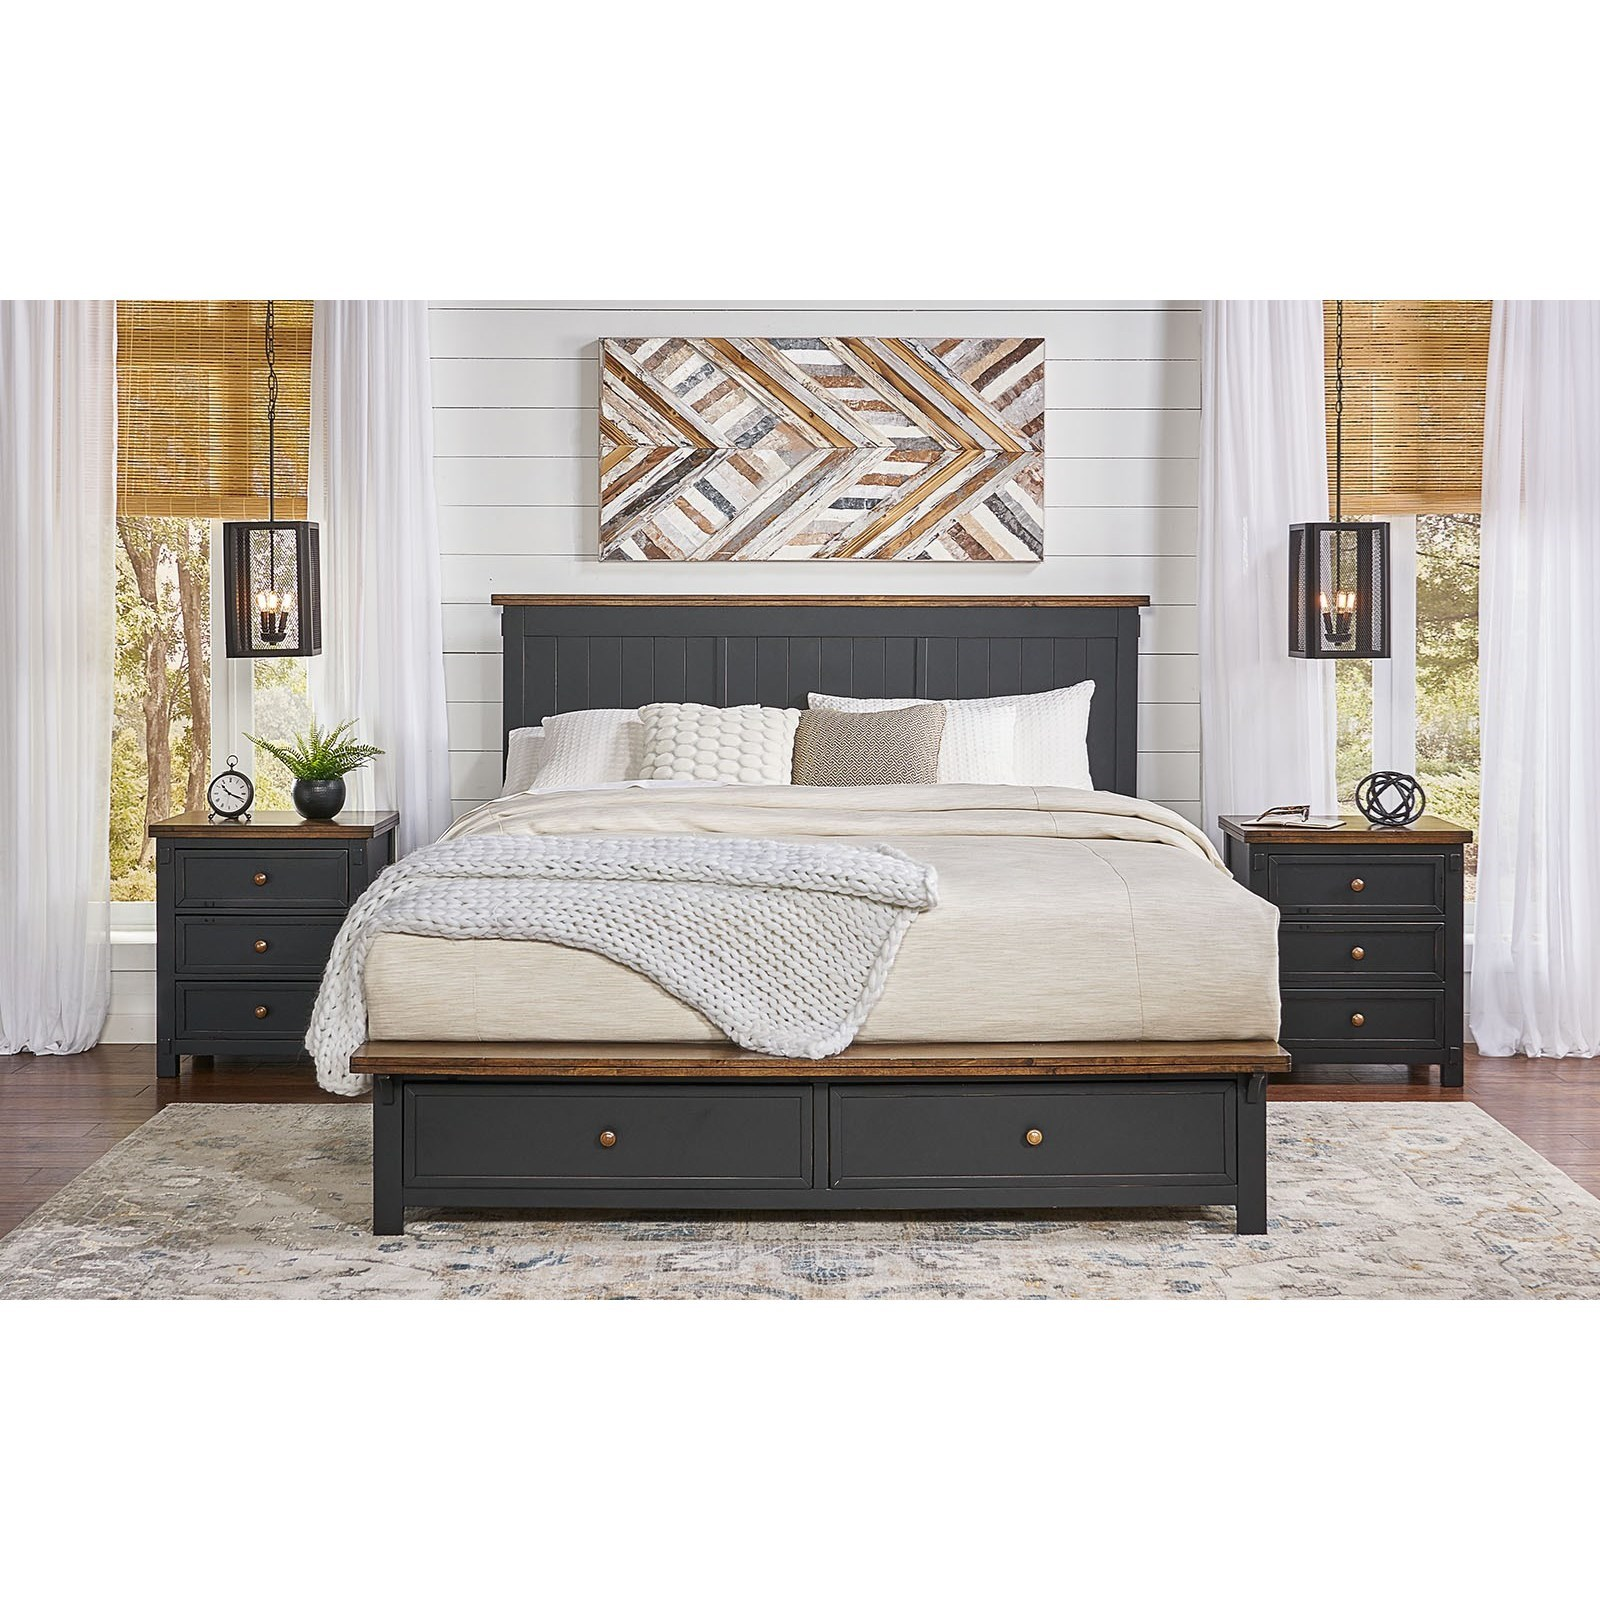 Spencer California King Storage Bed  by A-A at Walker's Furniture